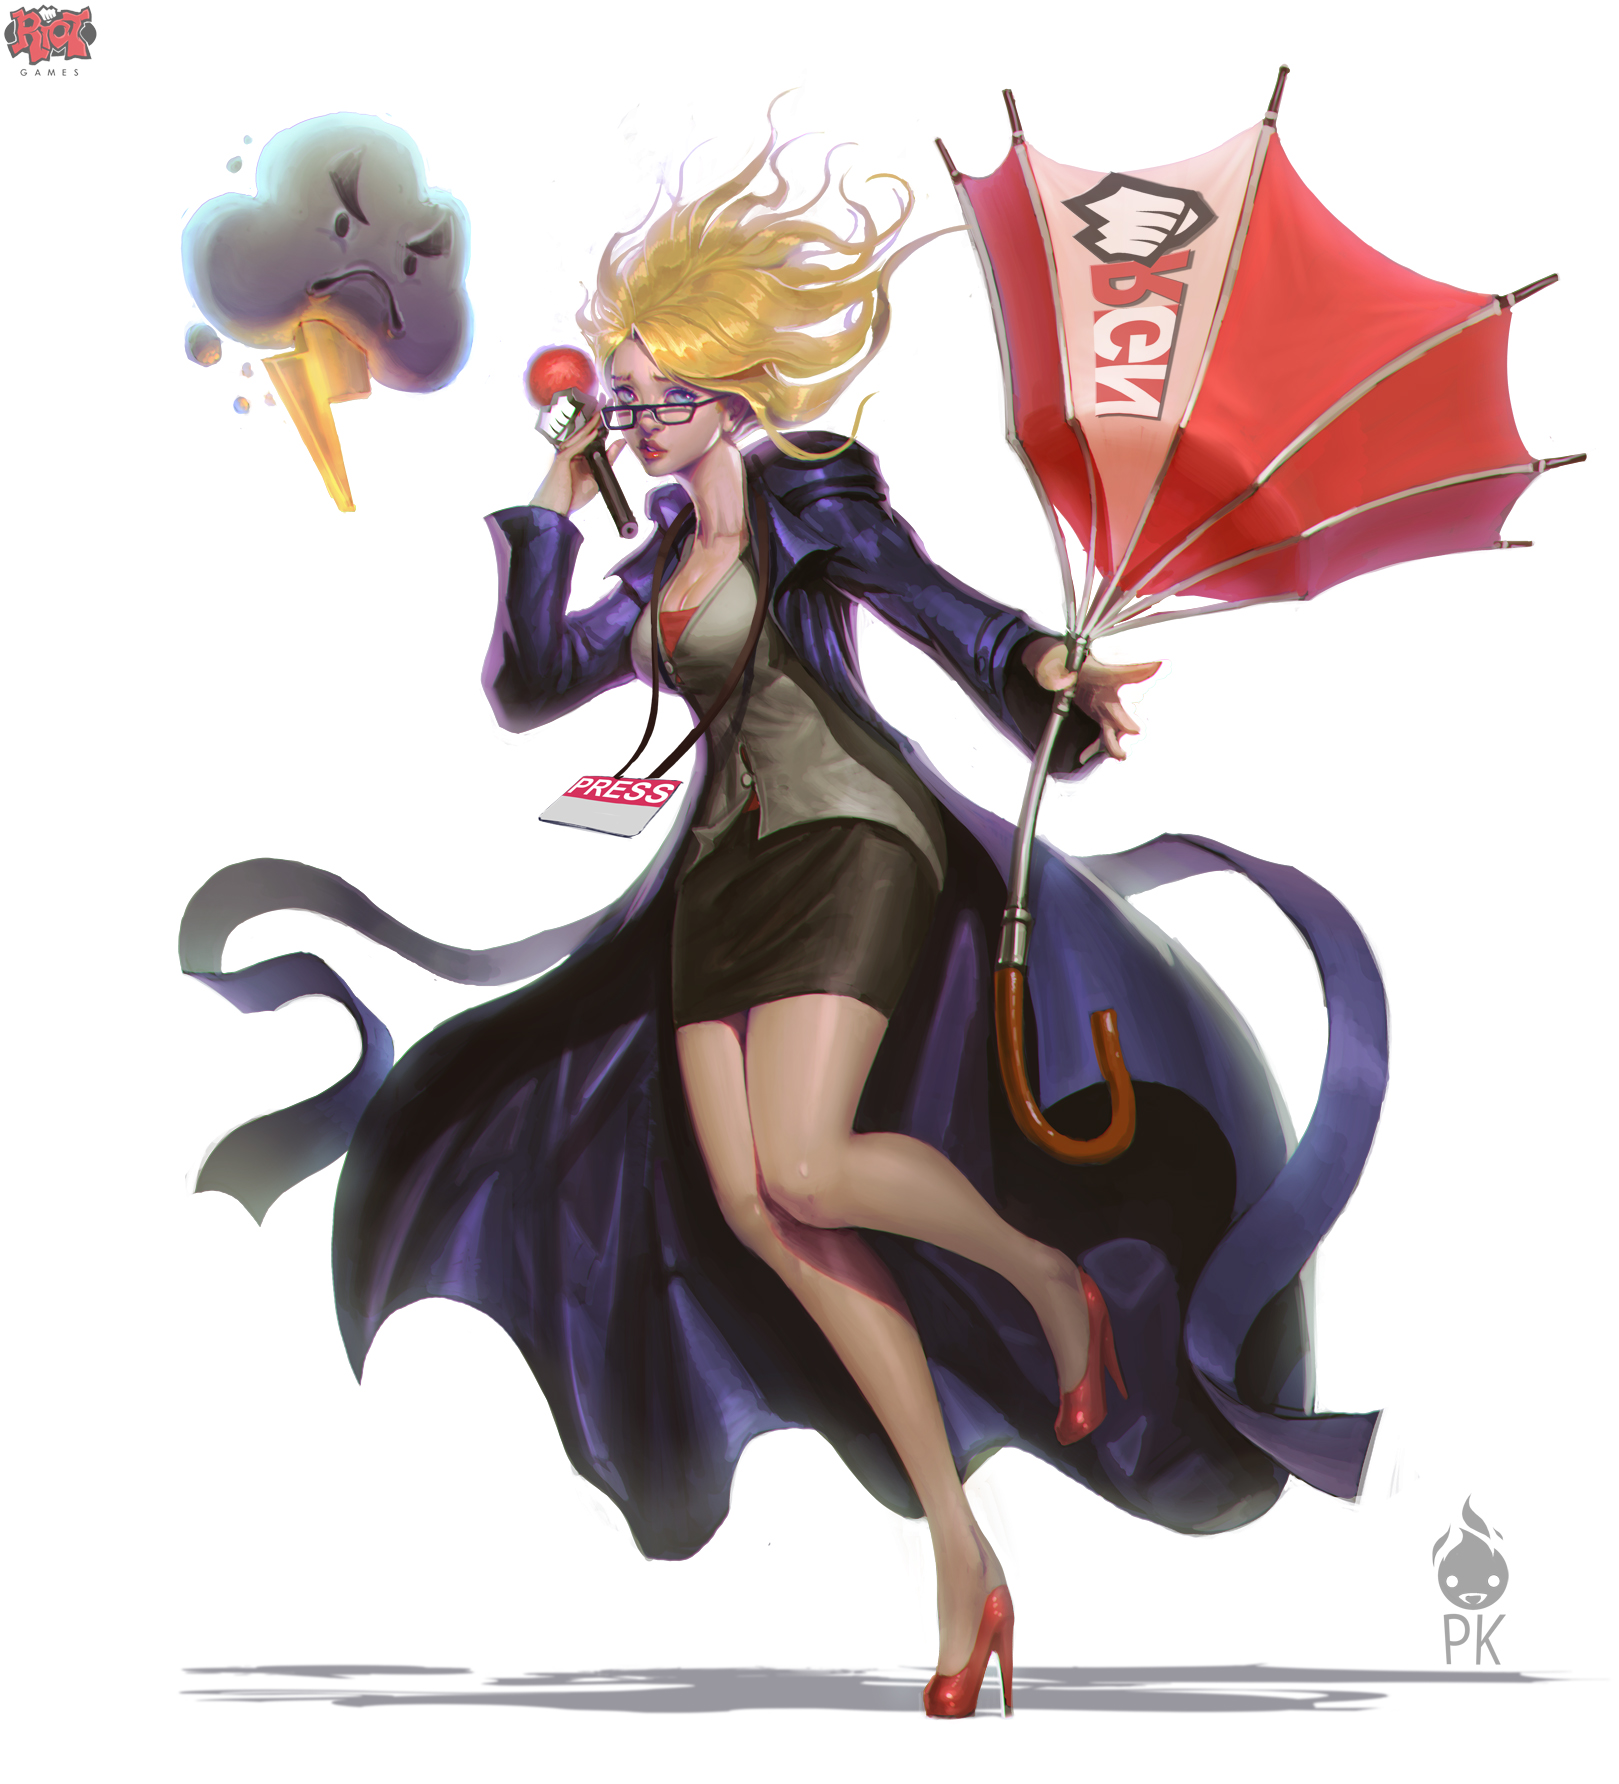 Bild - Janna Wetterfee Konzept.jpg | League of Legends ...